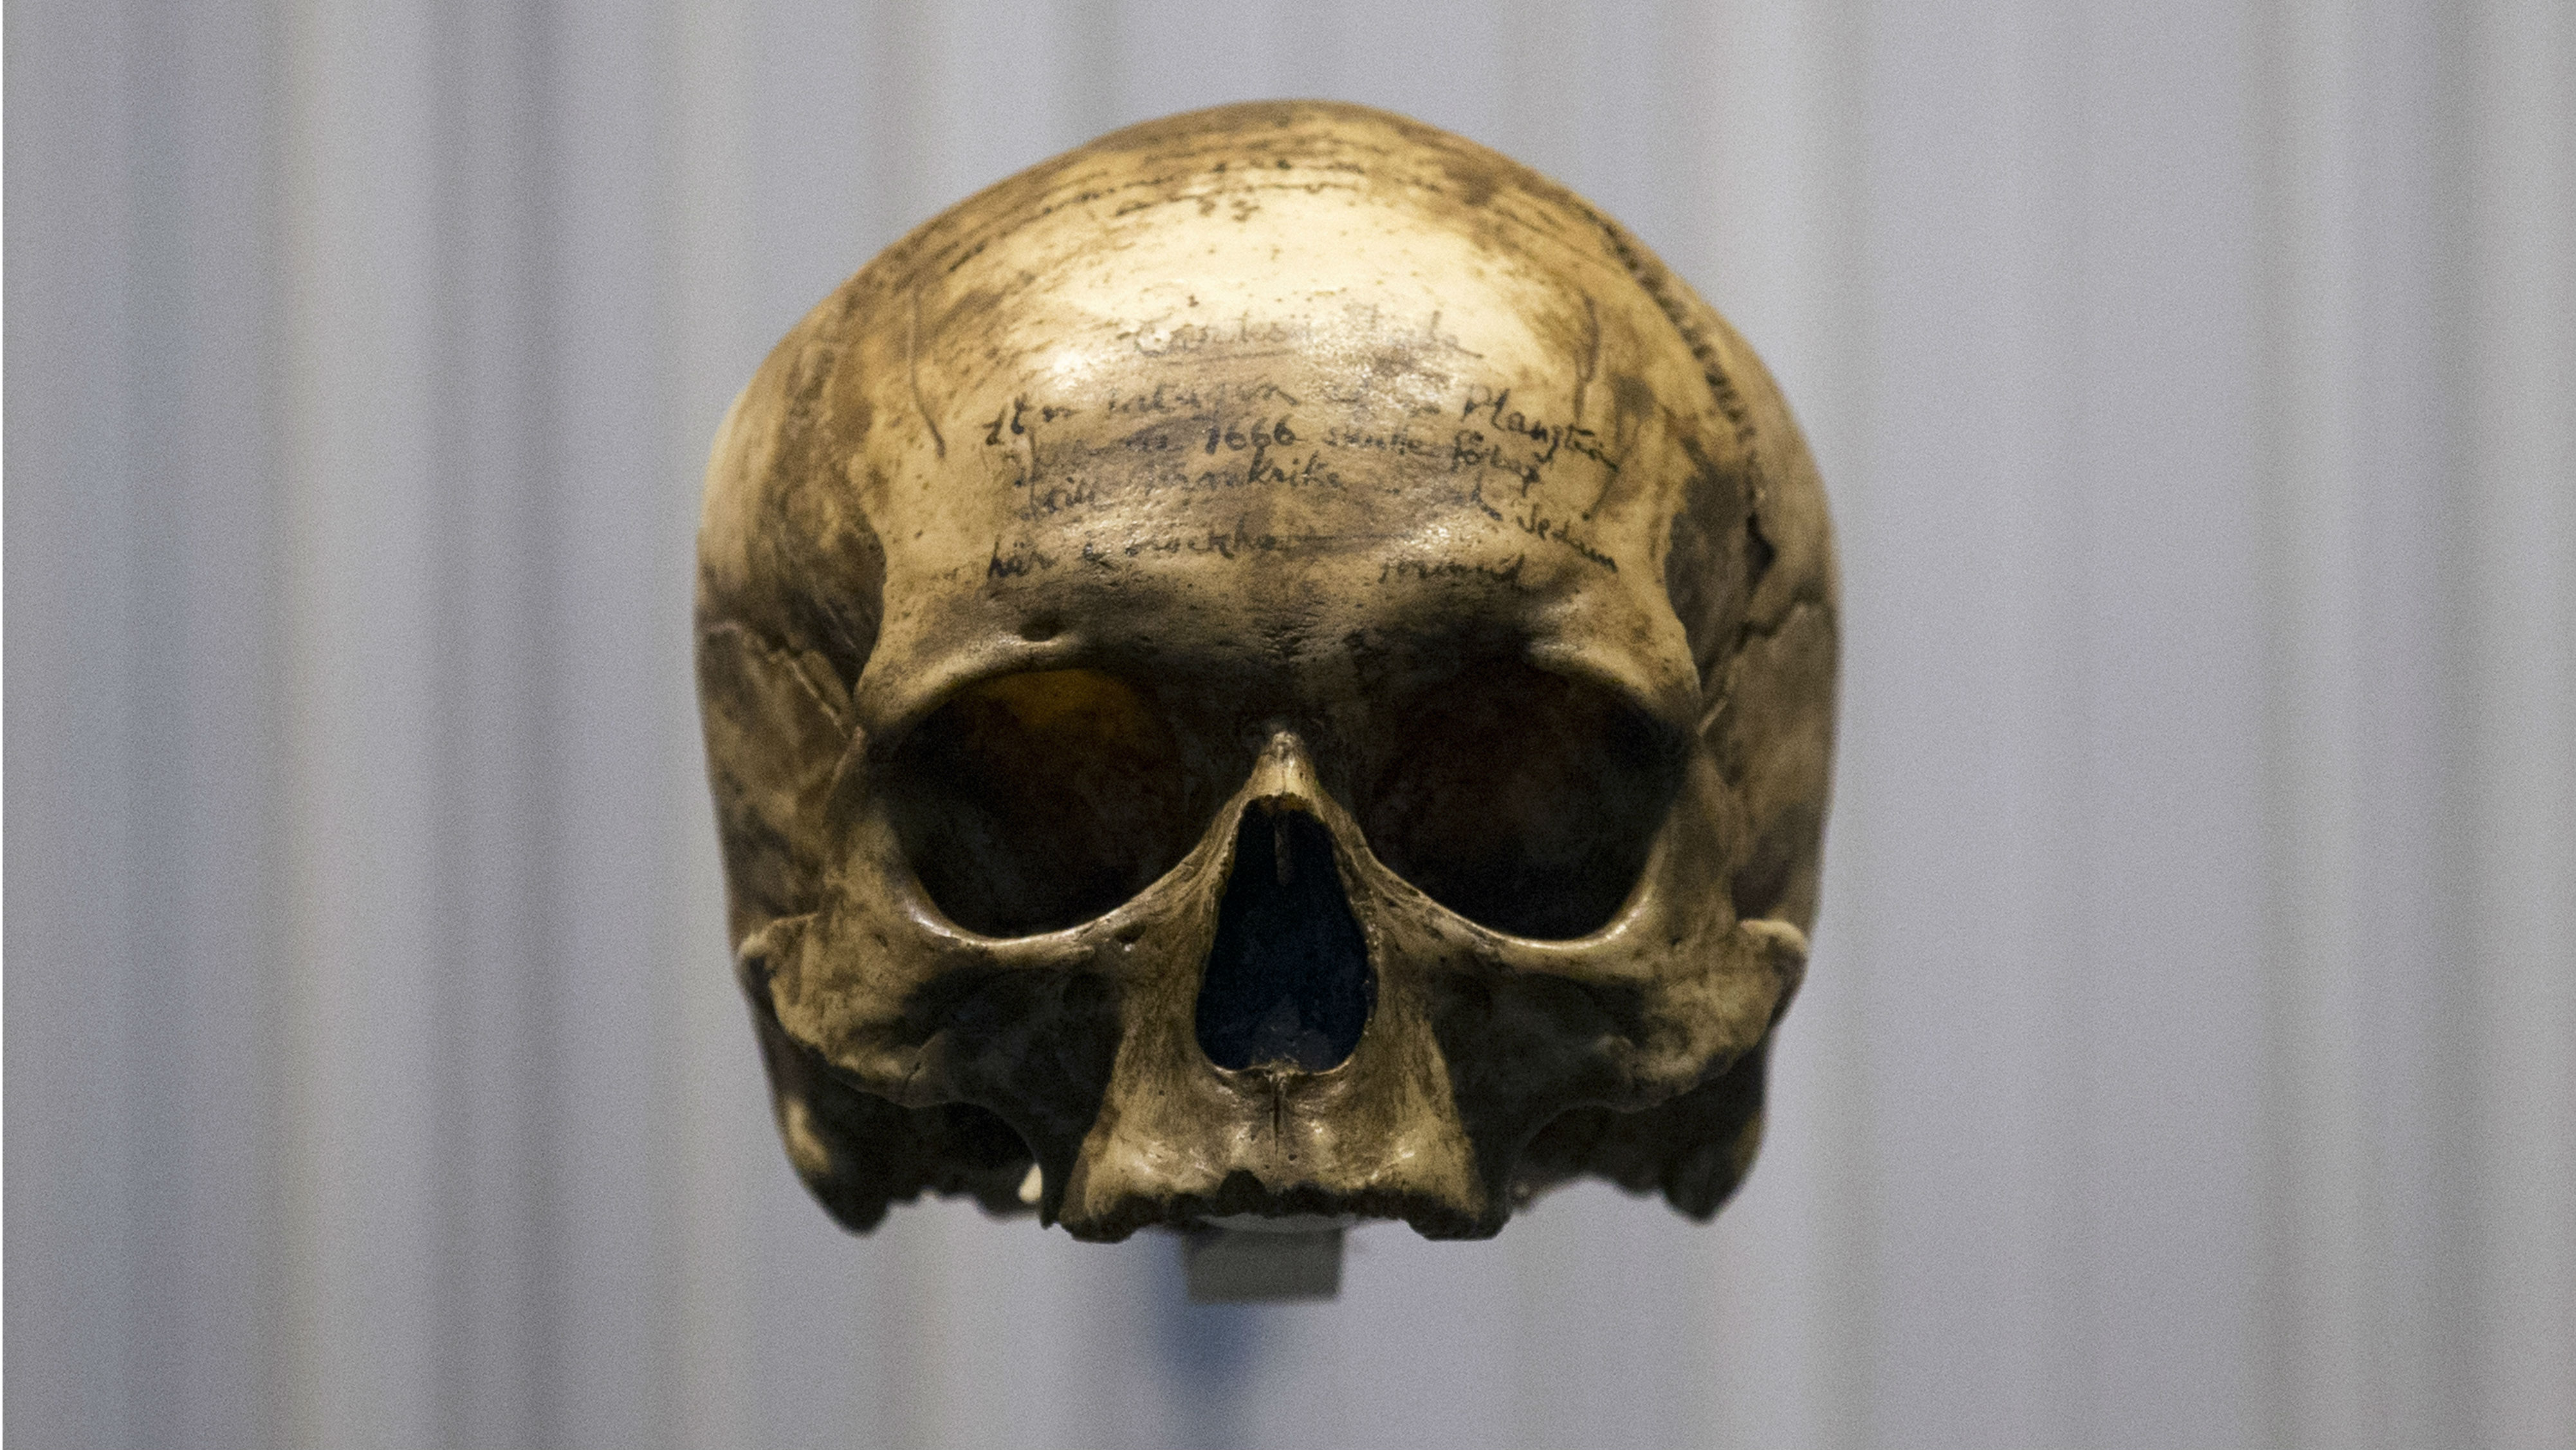 The skull of French philosopher Rene Descartes (1596-1650), top left, is displayed during a press visit at the Museum of Mankind (Musee de l'Homme) in Paris, France, Wednesday, Oct. 14, 2015. Among the thousands of objects and artifacts include the skull of Neanderthal man and of a French philosopher Rene Descartes, the museum, dedicated to anthropology, ethnology and prehistory of human evolution, will open to the public this weekend after six years of renovation.